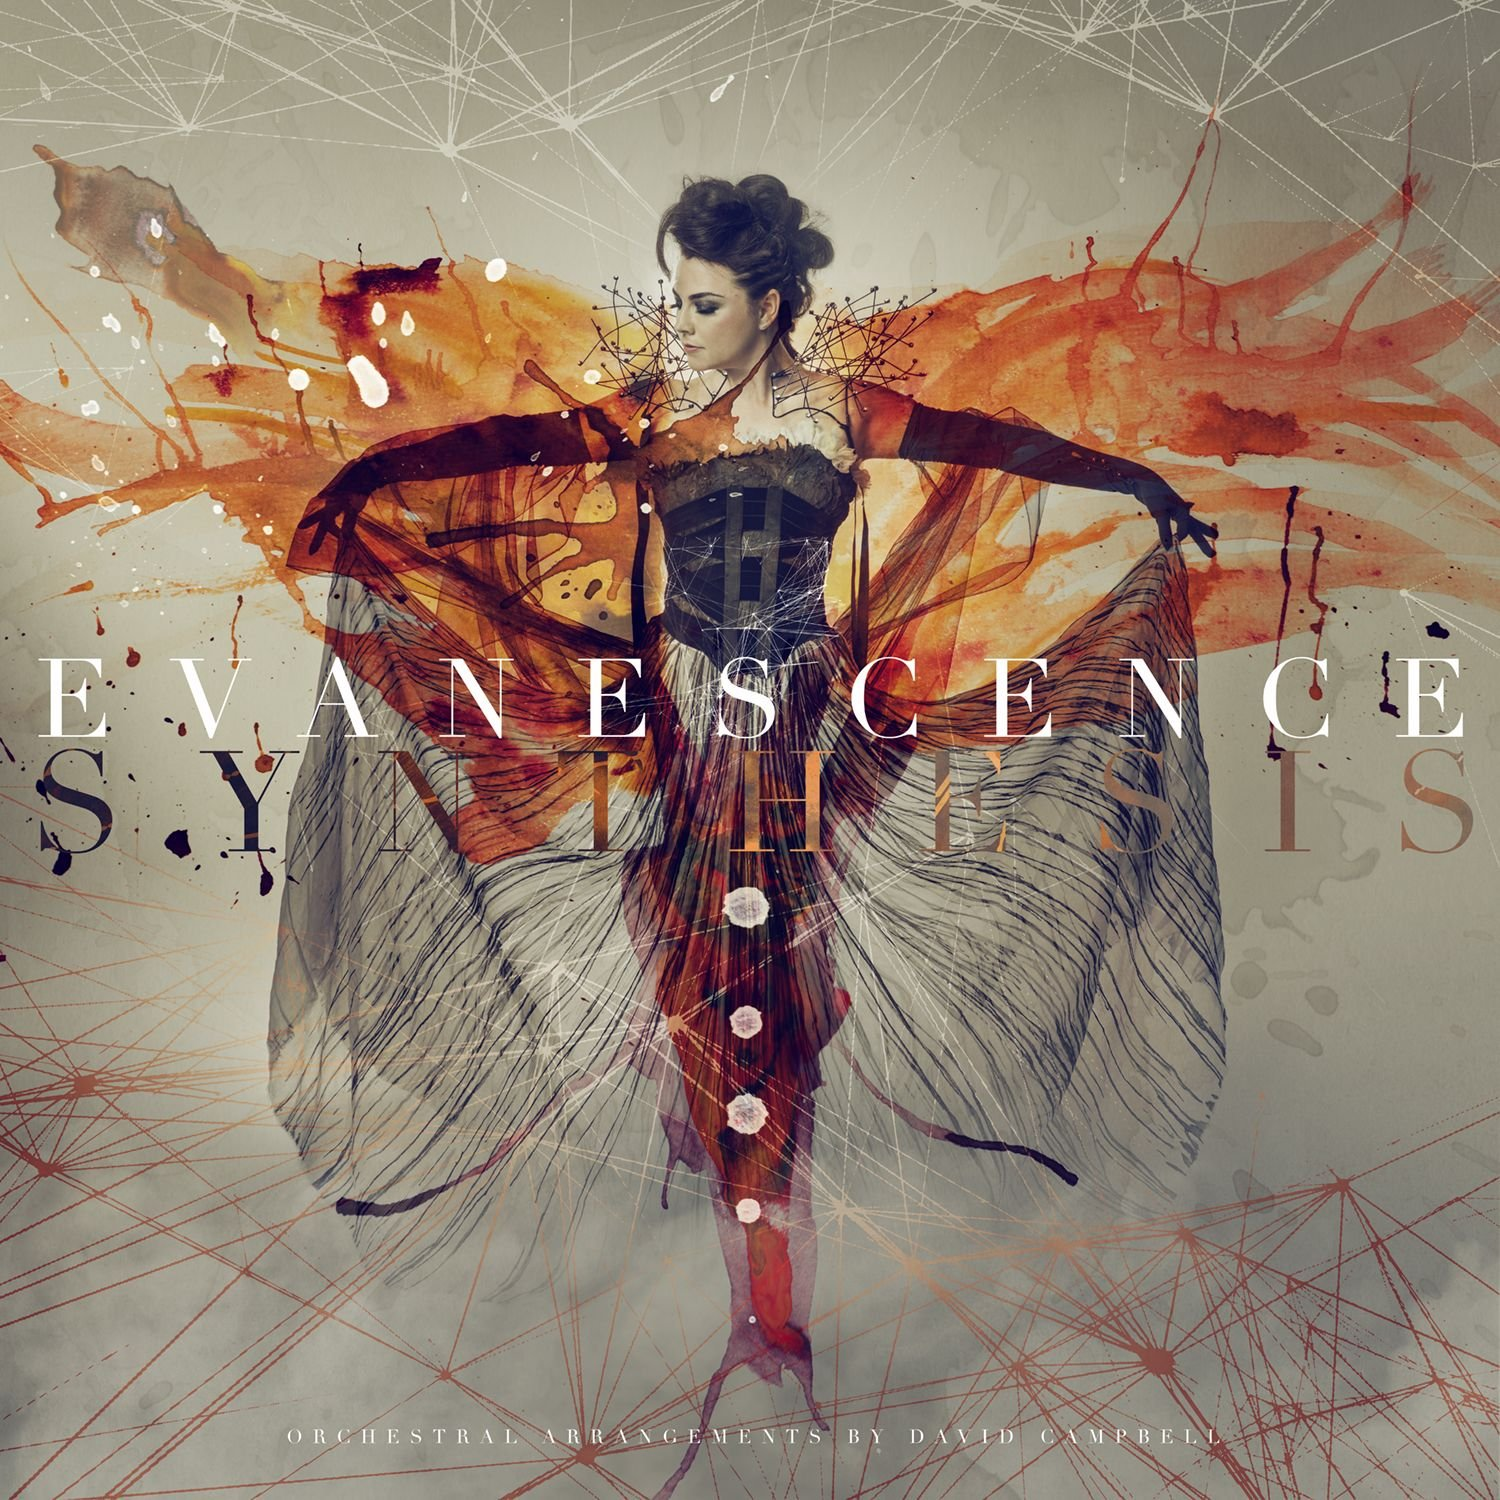 CD : Evanescence - Synthesis [Explicit Content] (CD)